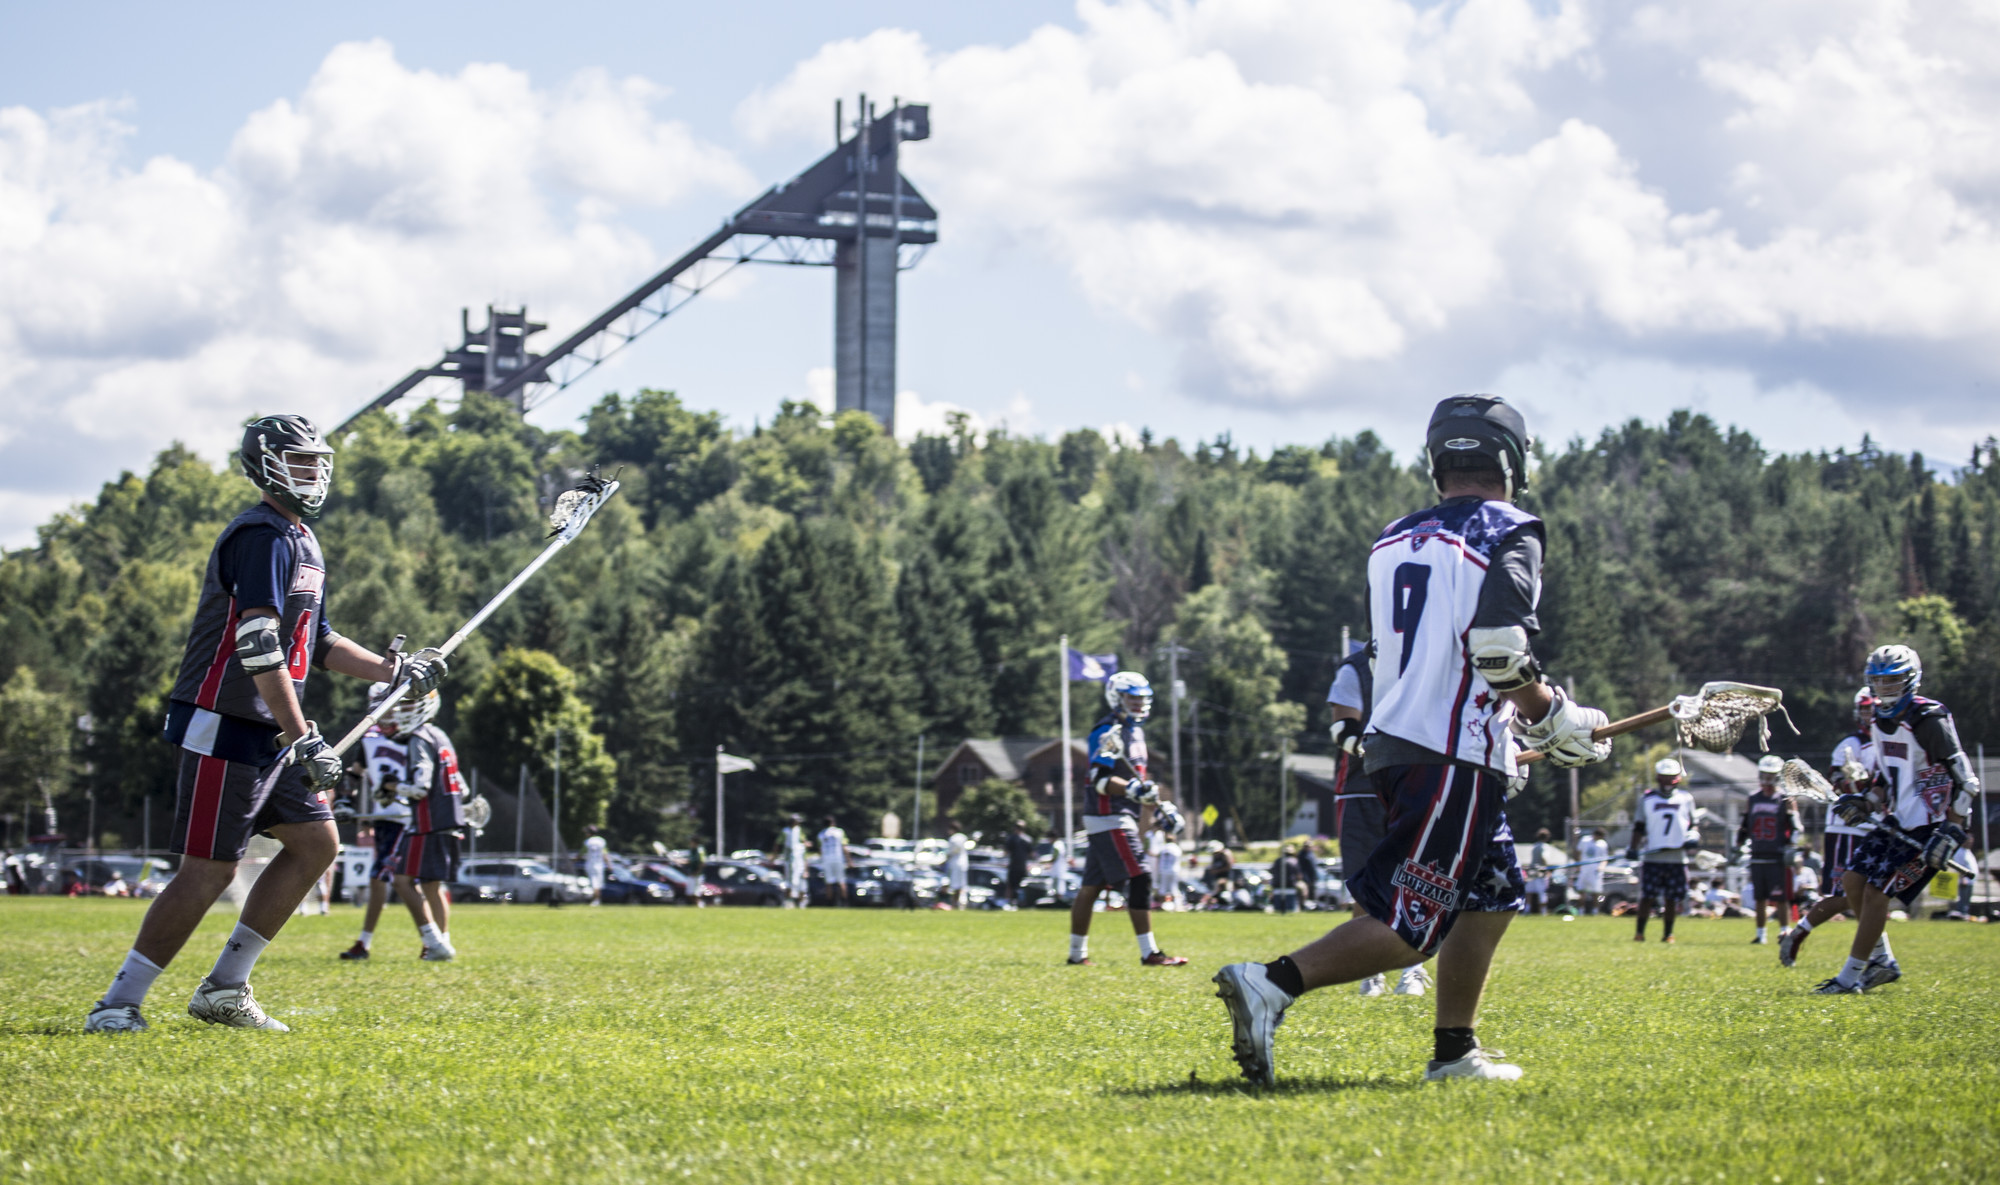 Athletes compete in the Lake Placid Lacrosse Tournament with views of the ski jumps behind them.